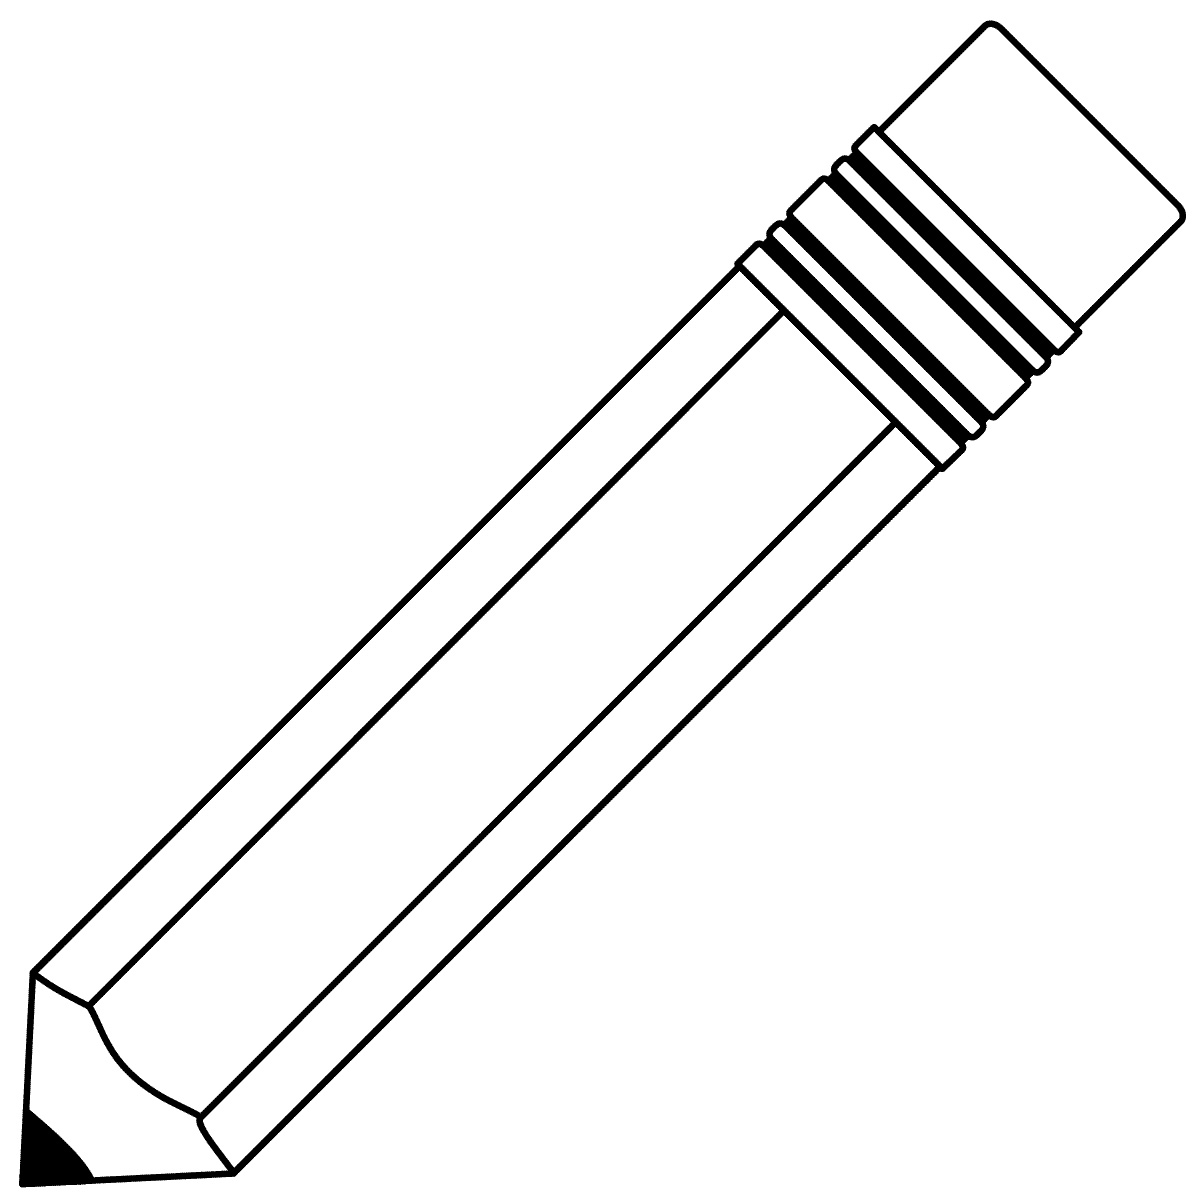 pencil for coloring free printable pencil coloring pages for kids for pencil coloring